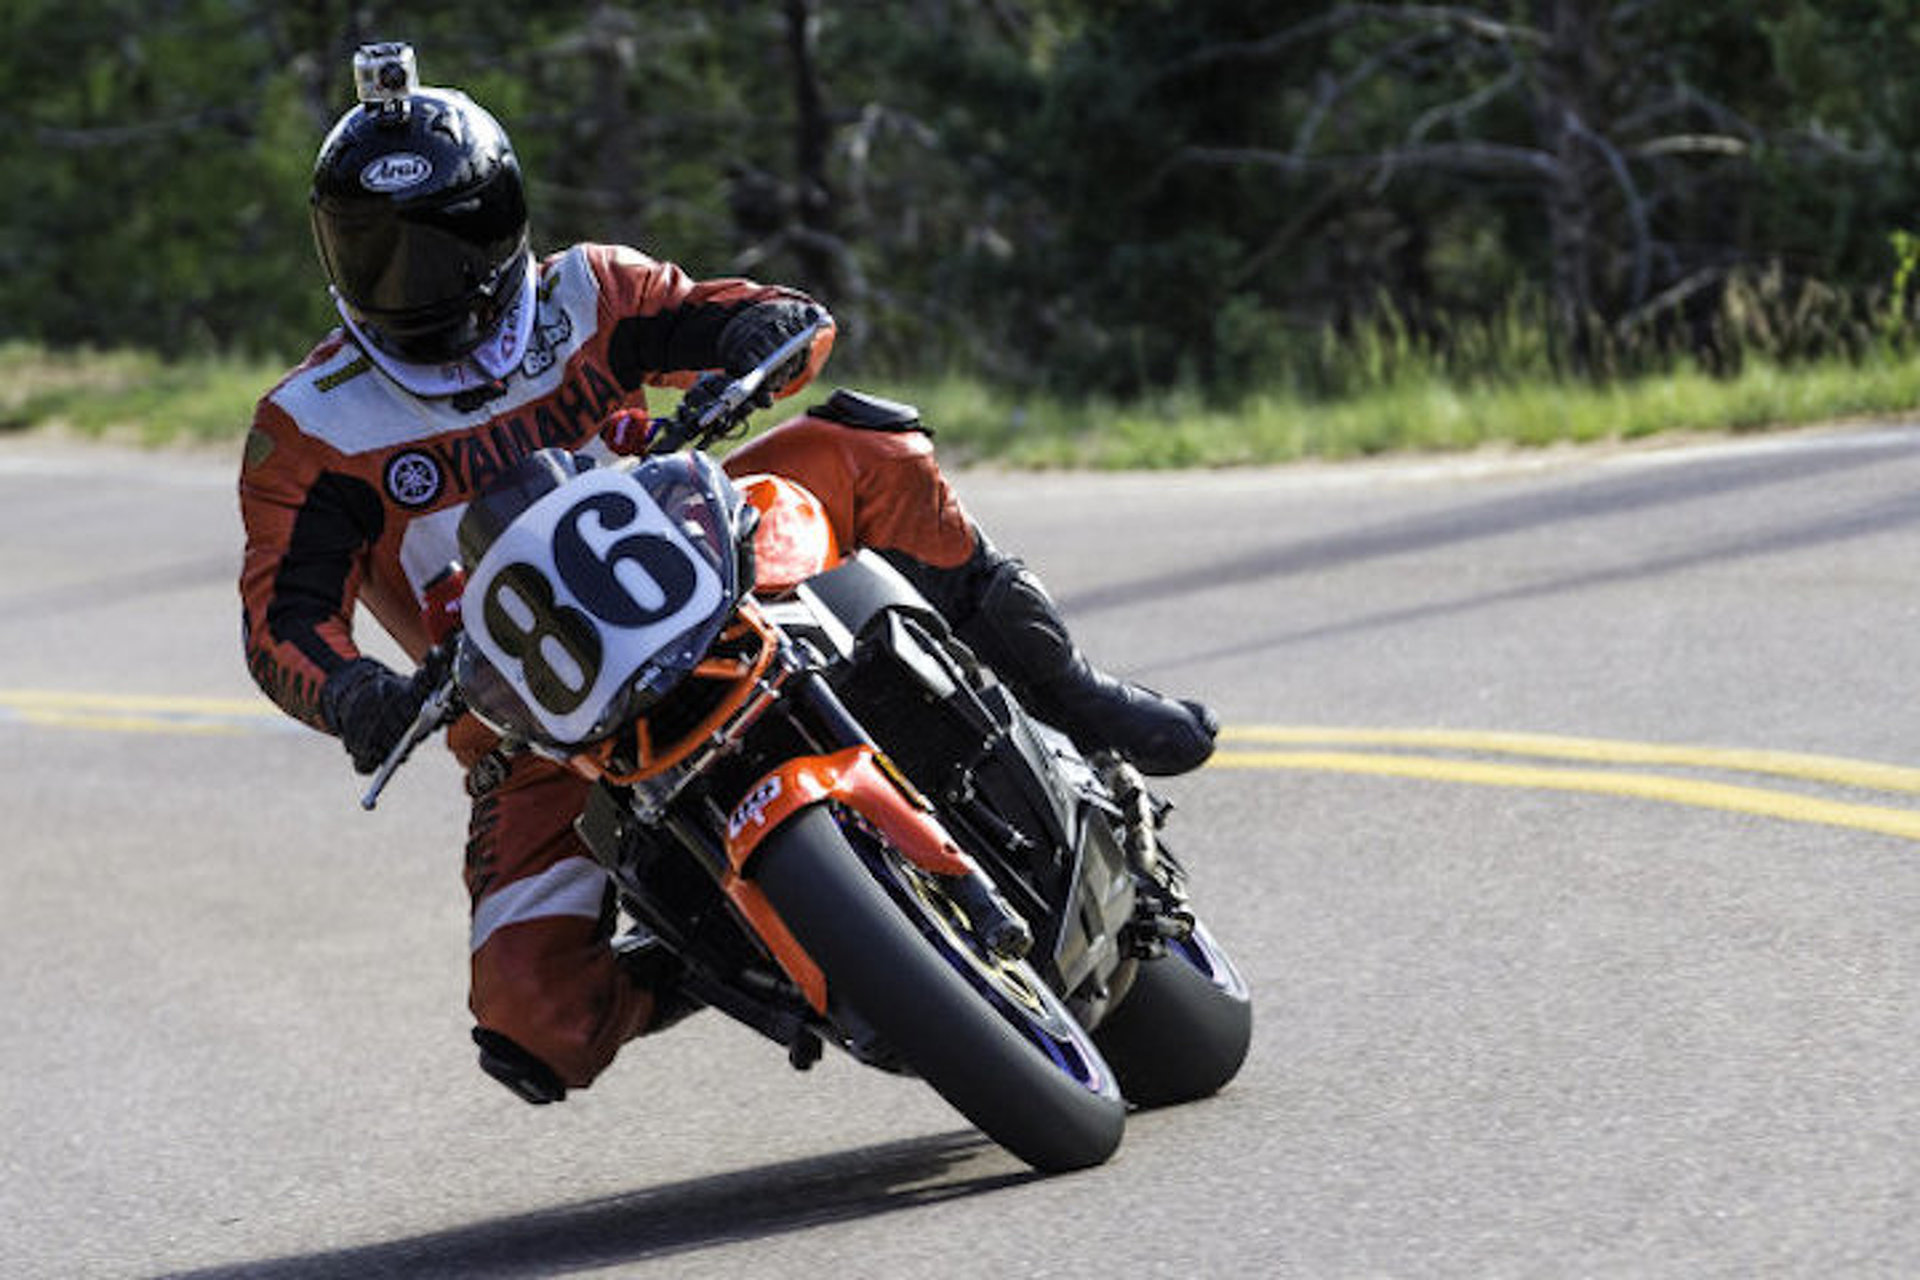 Pikes Peak Claims Life Of Motorcyclist Bobby Goodin